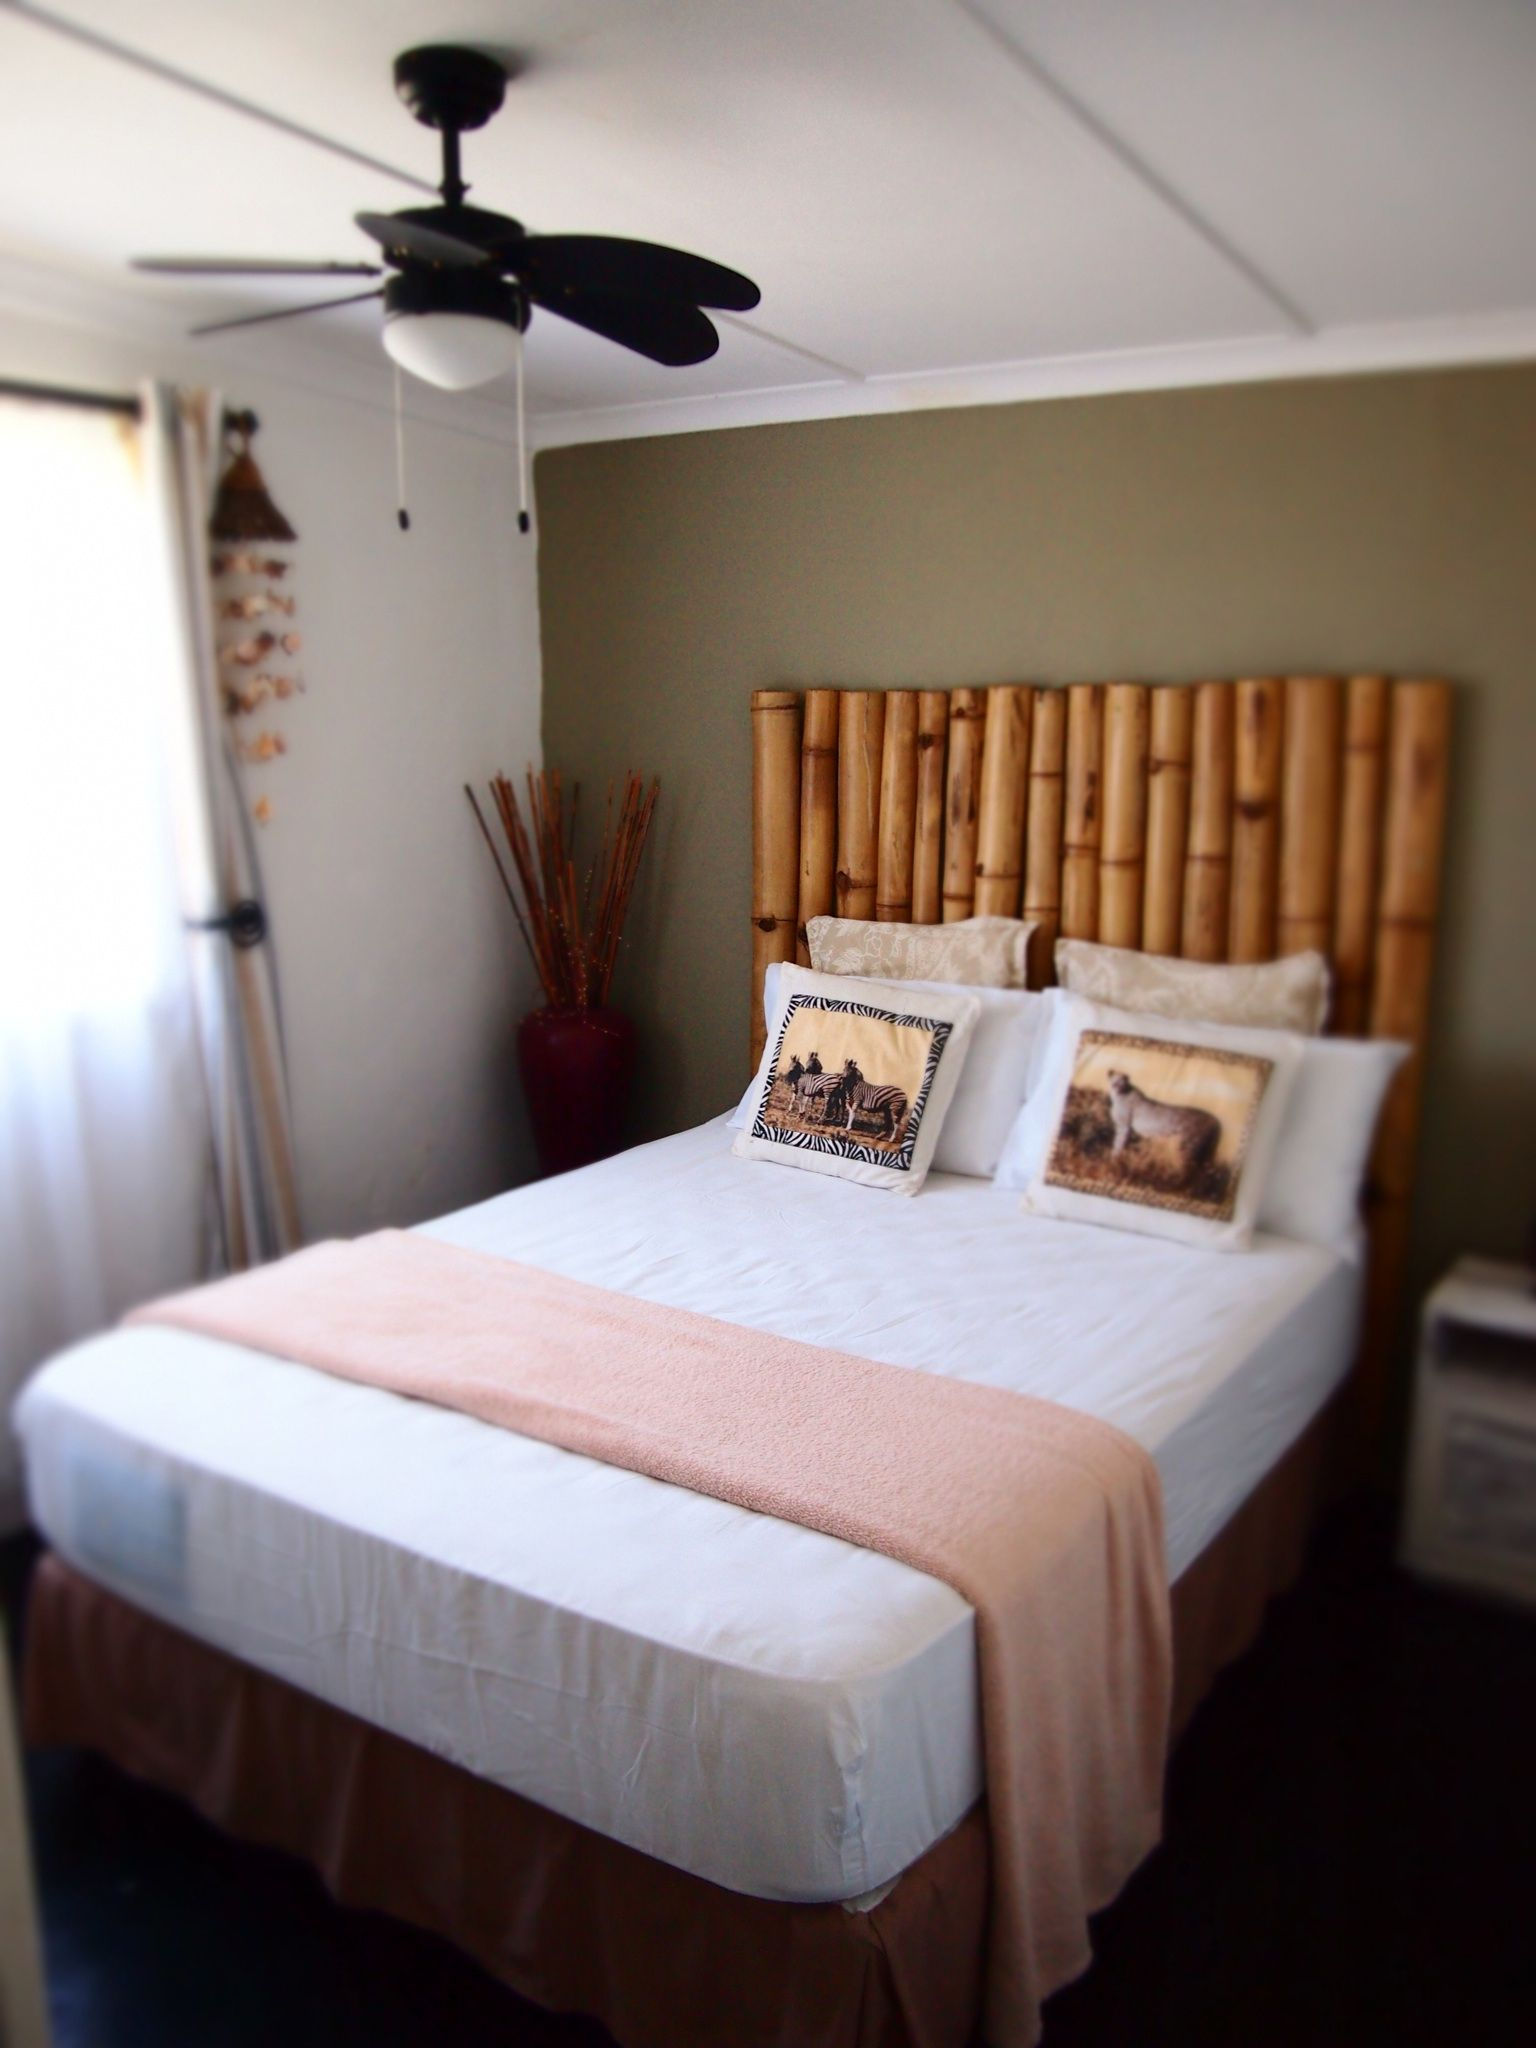 The Bamboo Room Has A Bamboo Headboard And Mirrors Made Of